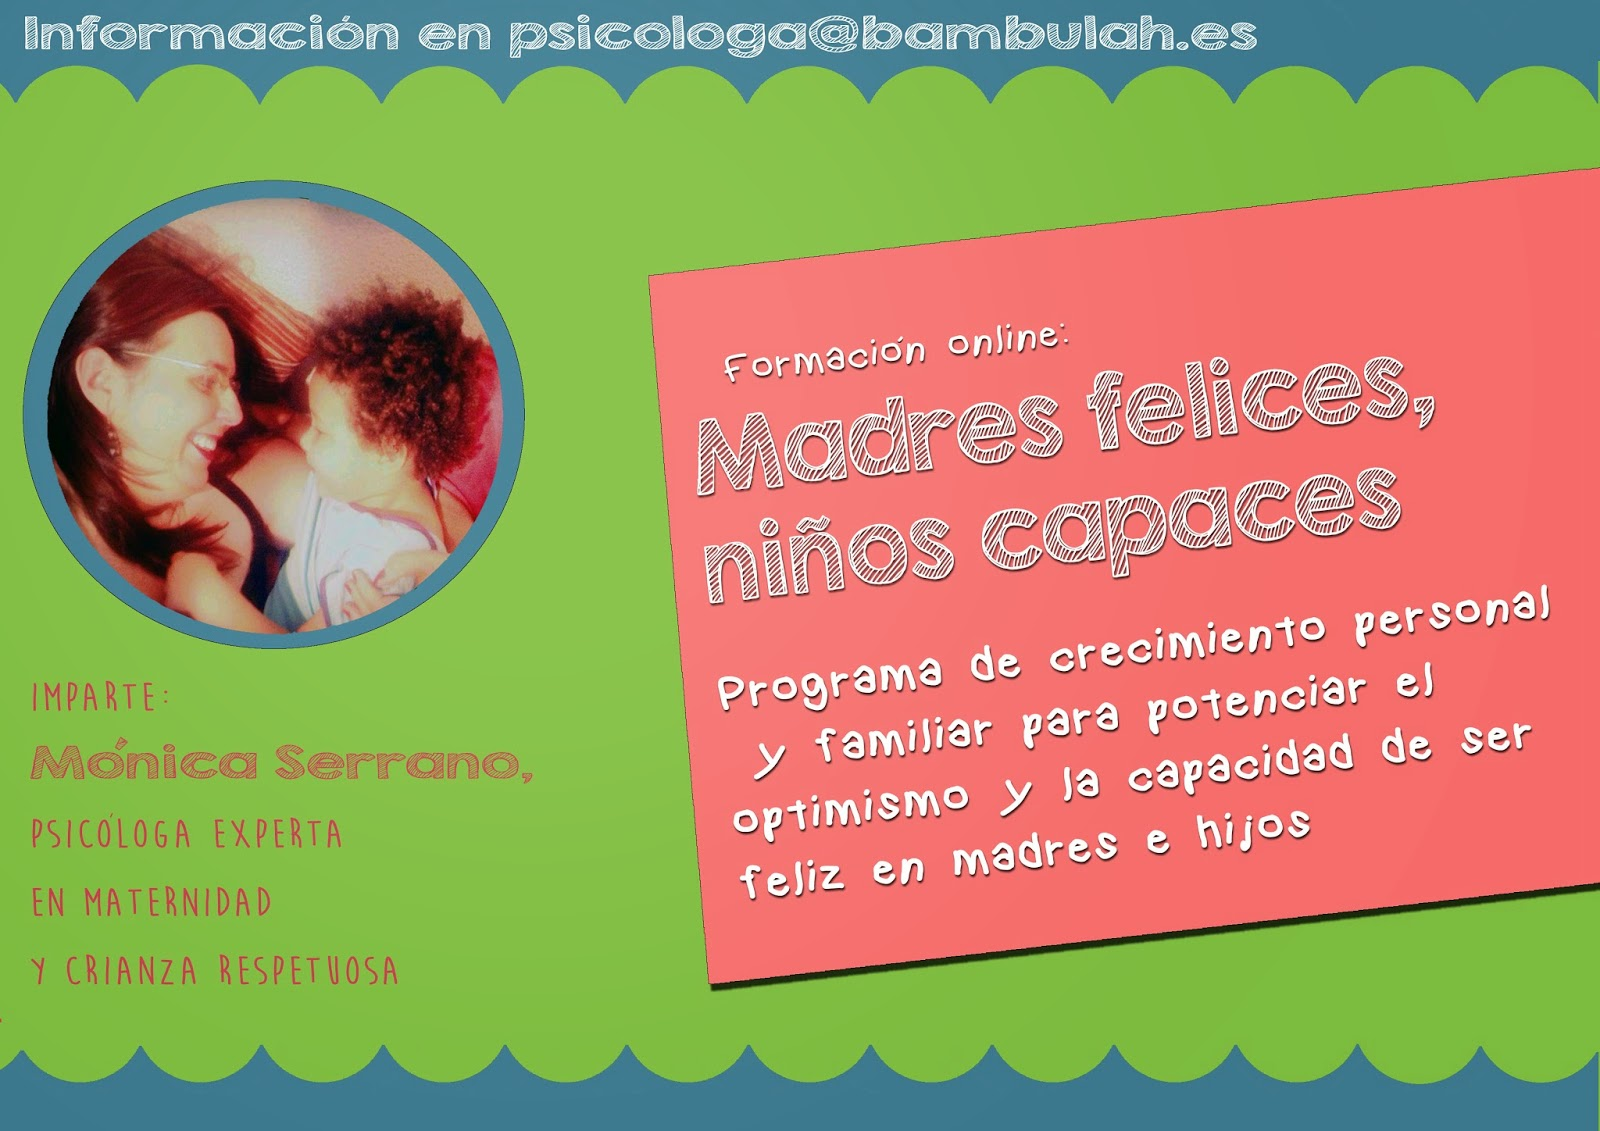 http://www.psicologiaycrianza.com/2015/04/madres-felices-ninos-capaces.html